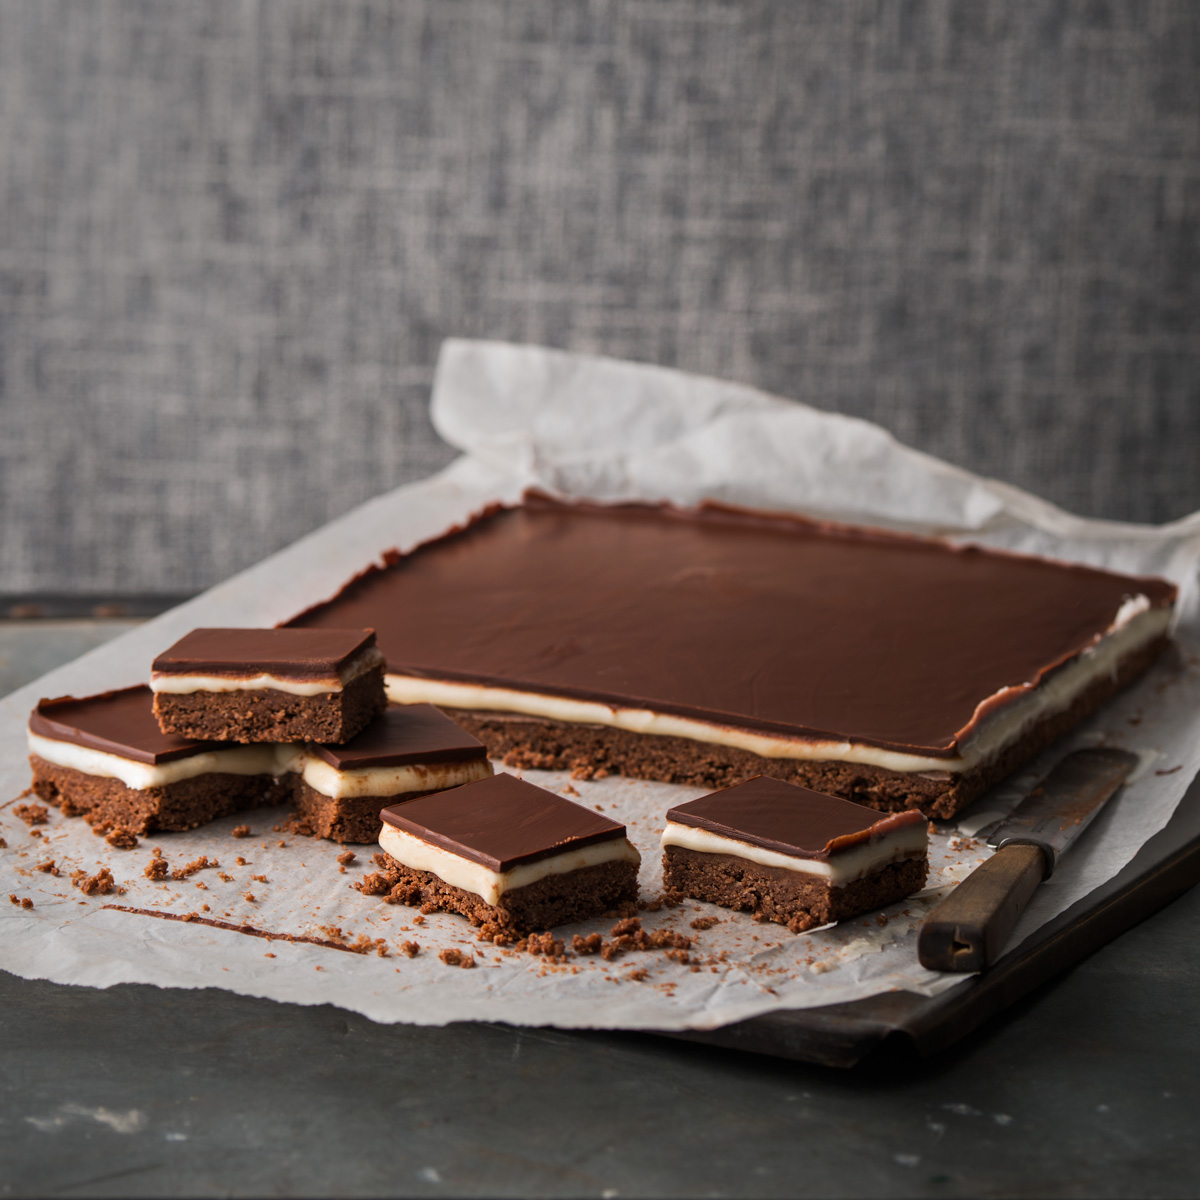 Haigh's Chocolate & Peppermint Slice